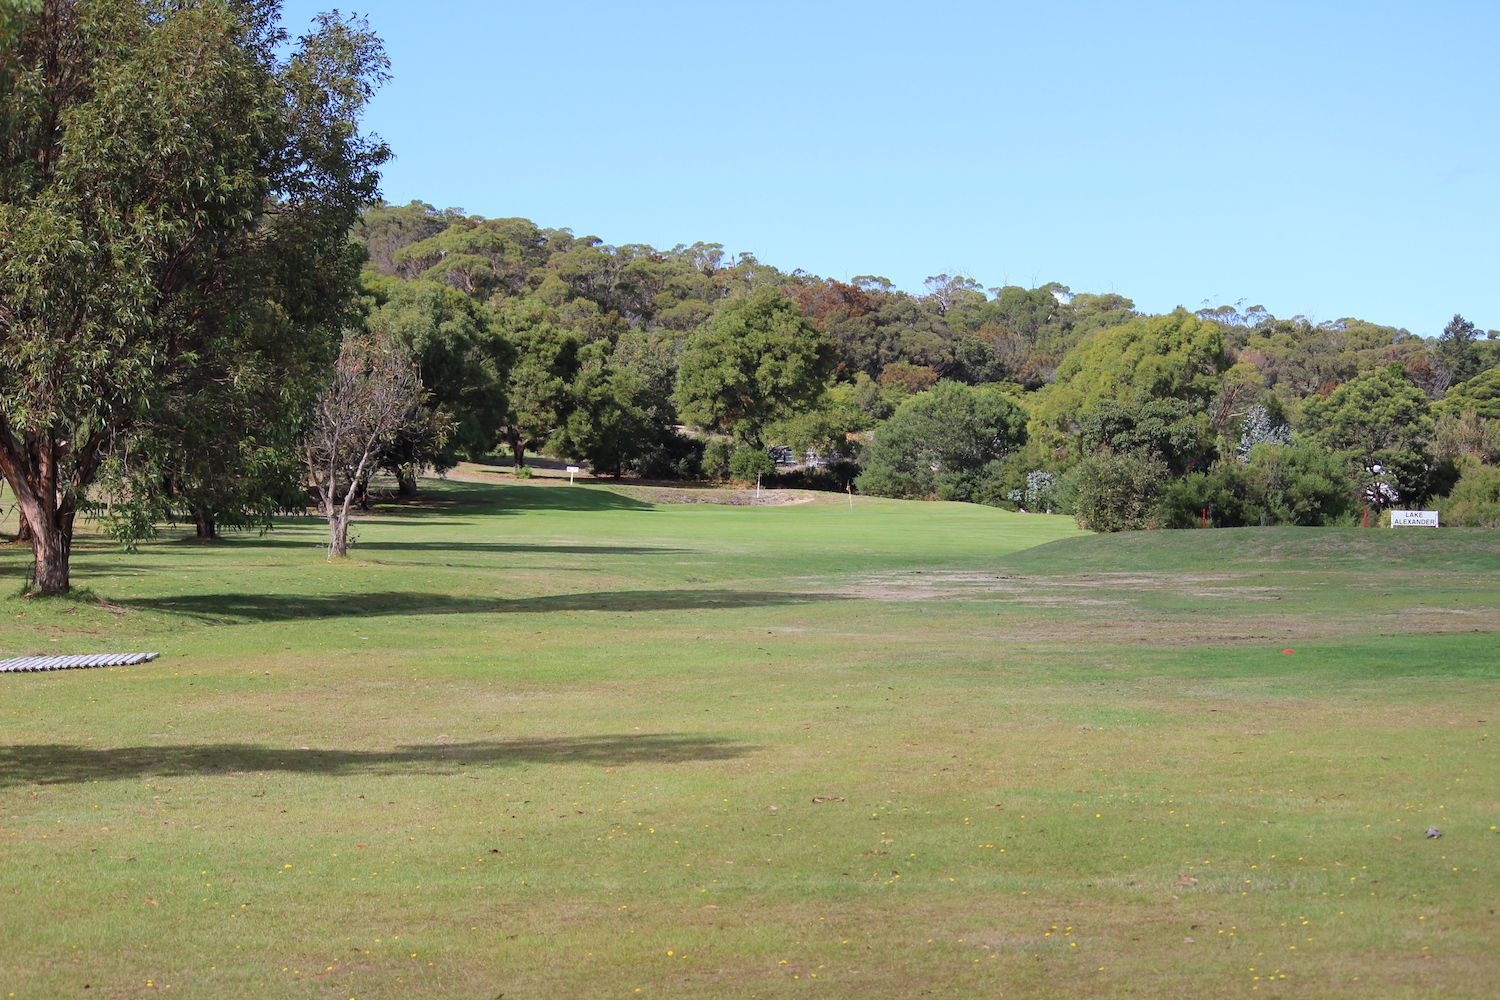 Hole 2     Plays longer than it looks. Lake Alexander forms the right hand edge of the fairway. Hitting into a medium sized flat green with a bunker behind.    Men: 180 metres, Par 3, Stroke Index 15   Ladies: 144 metres, Par 3, Stroke Index 15/33